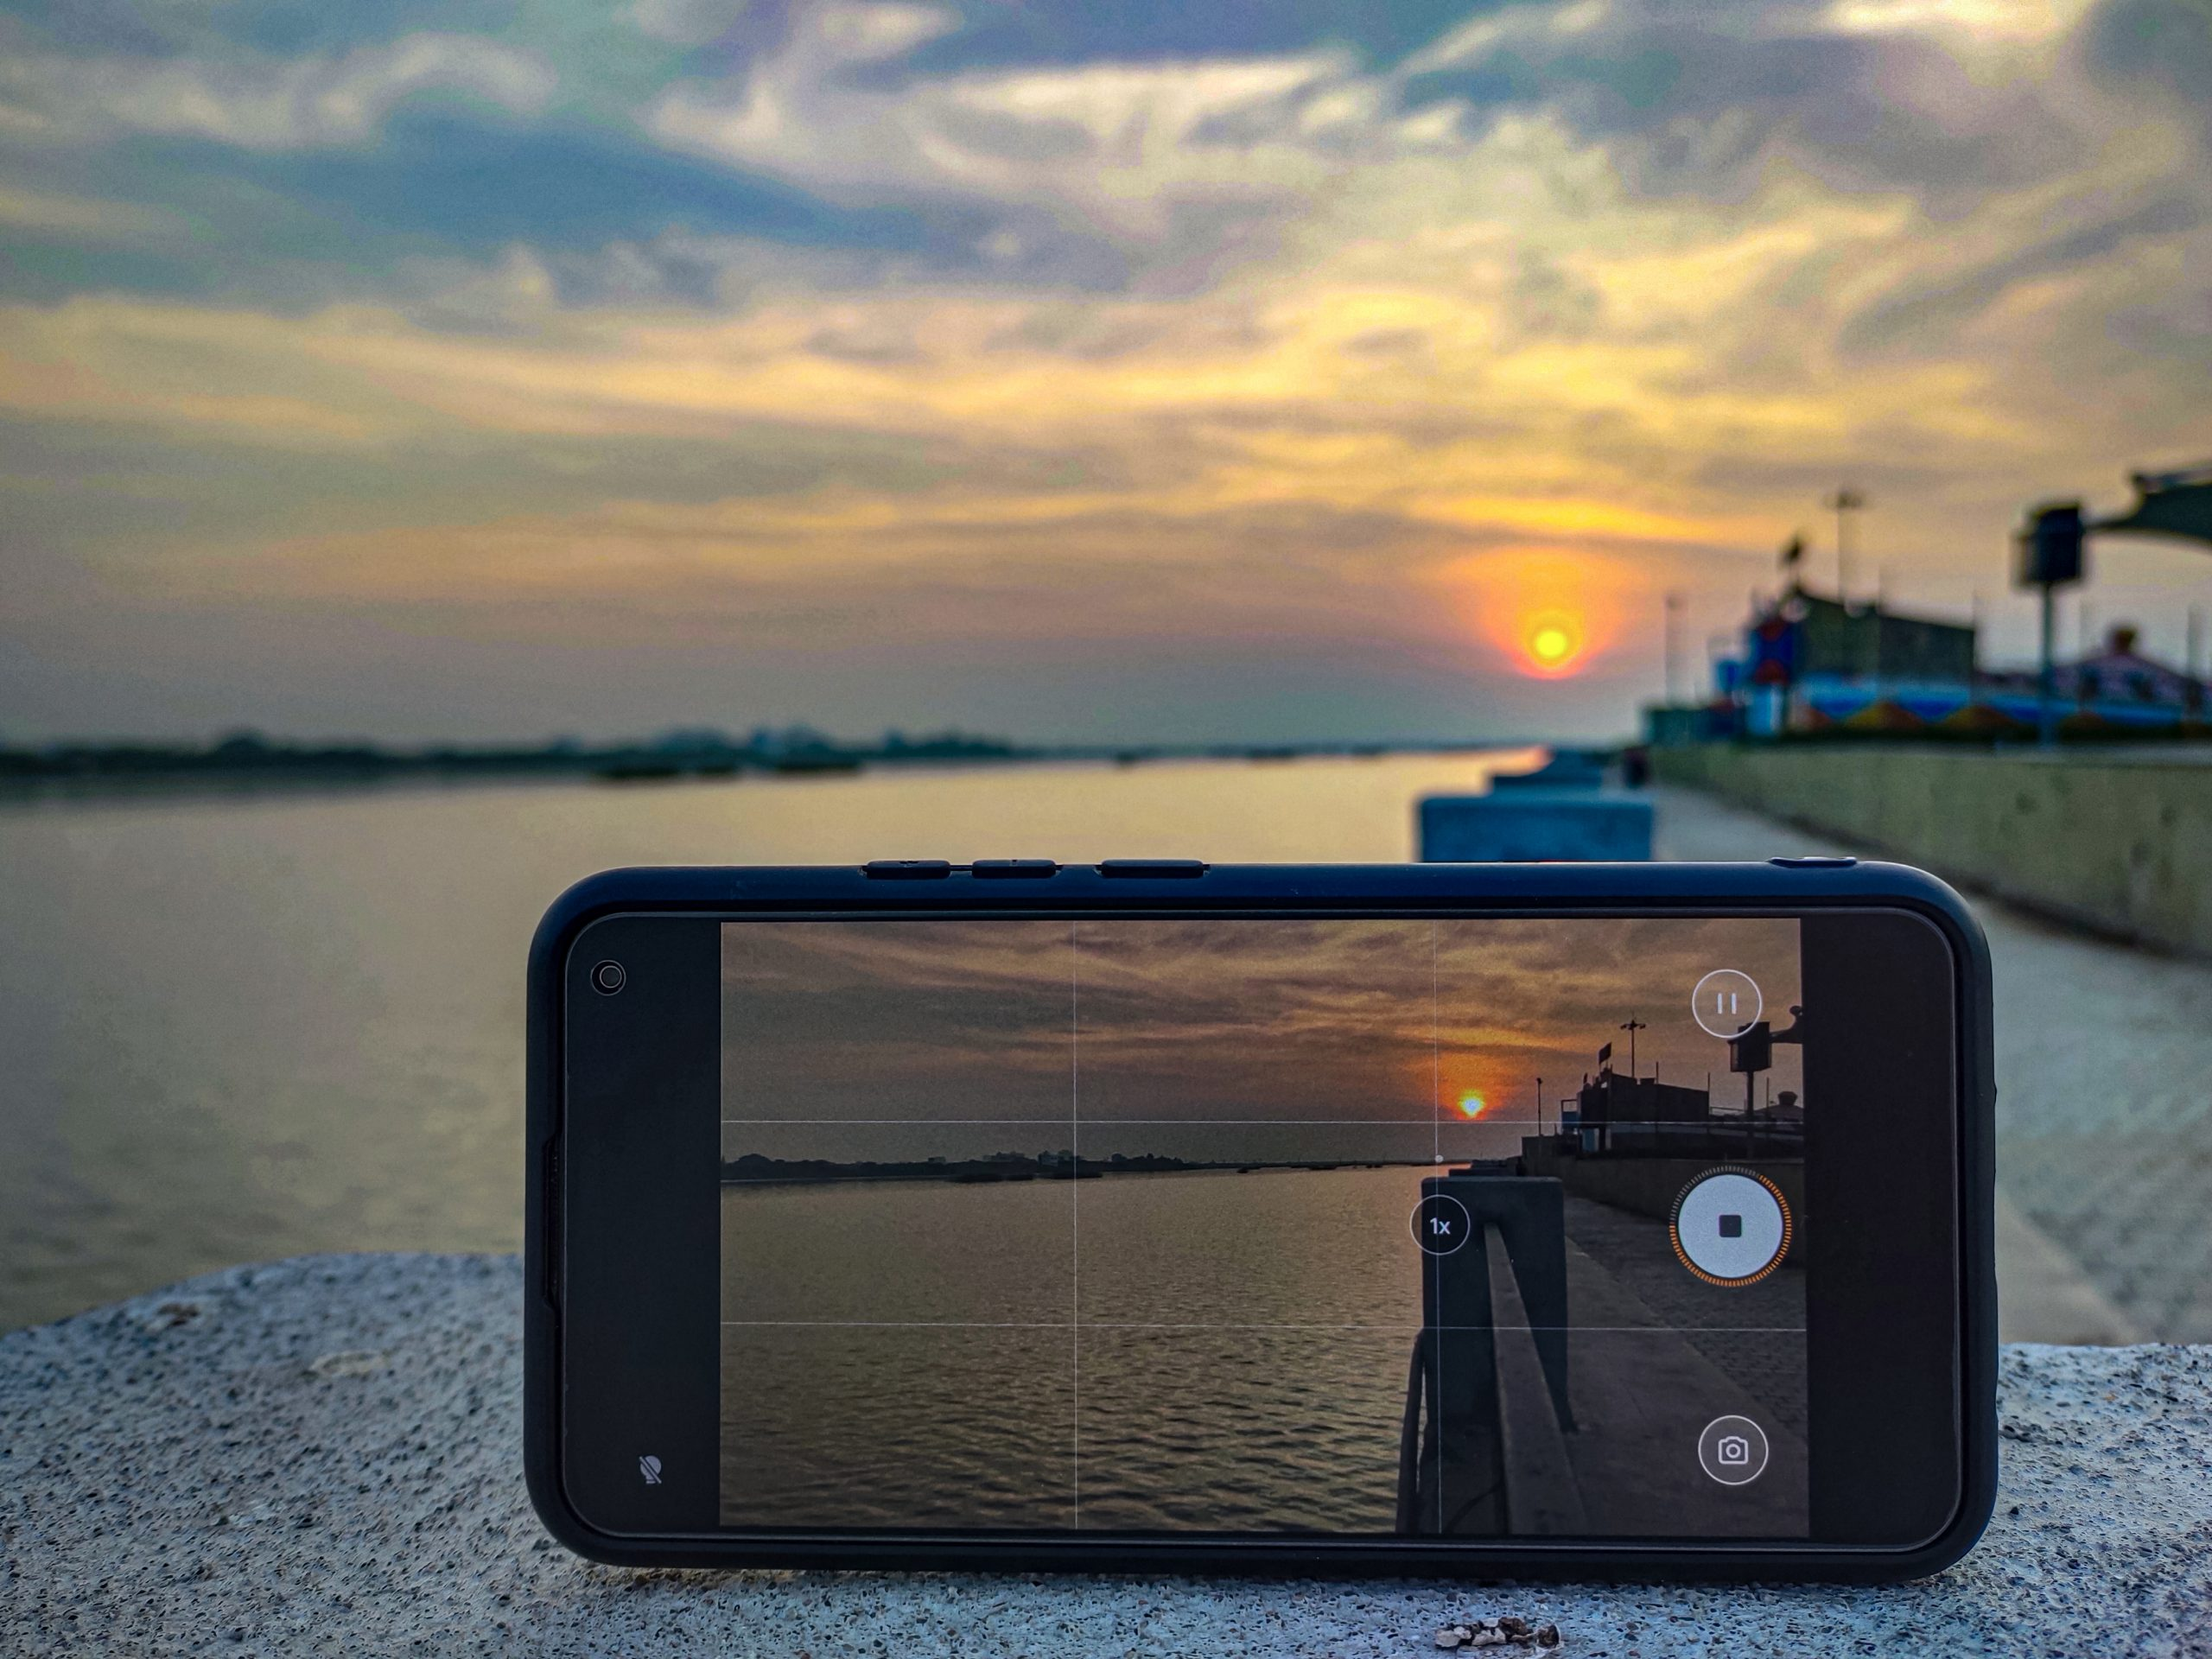 A mobile phone camera photography